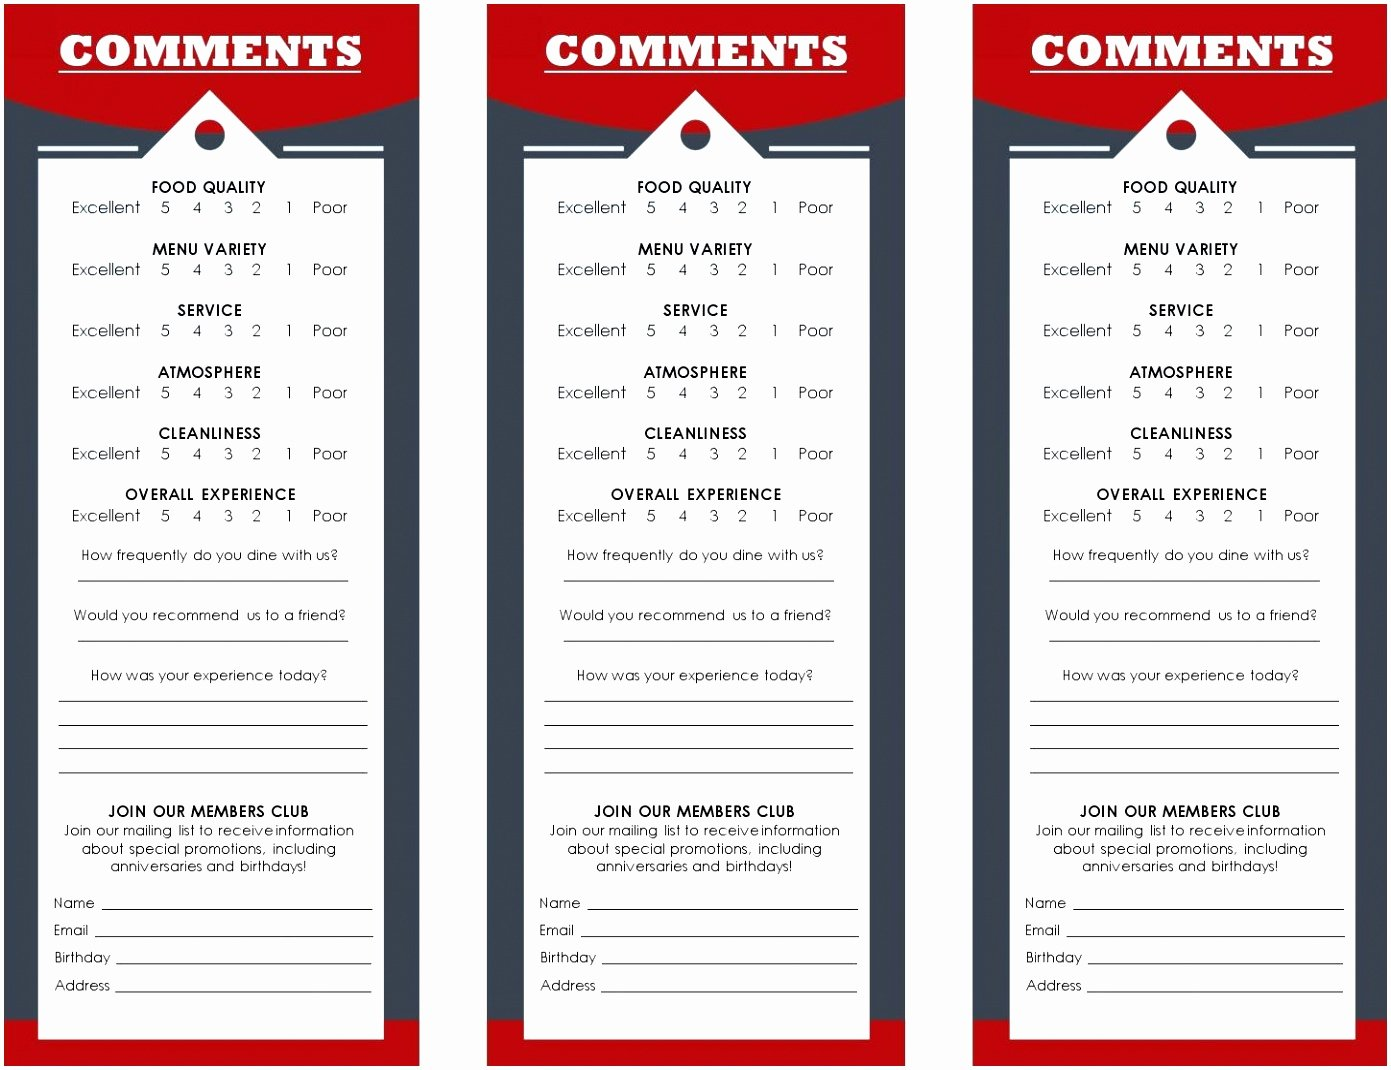 Restaurant Comment Card Template Free Luxury 9 Restaurant Ment Card Template Vrtwi